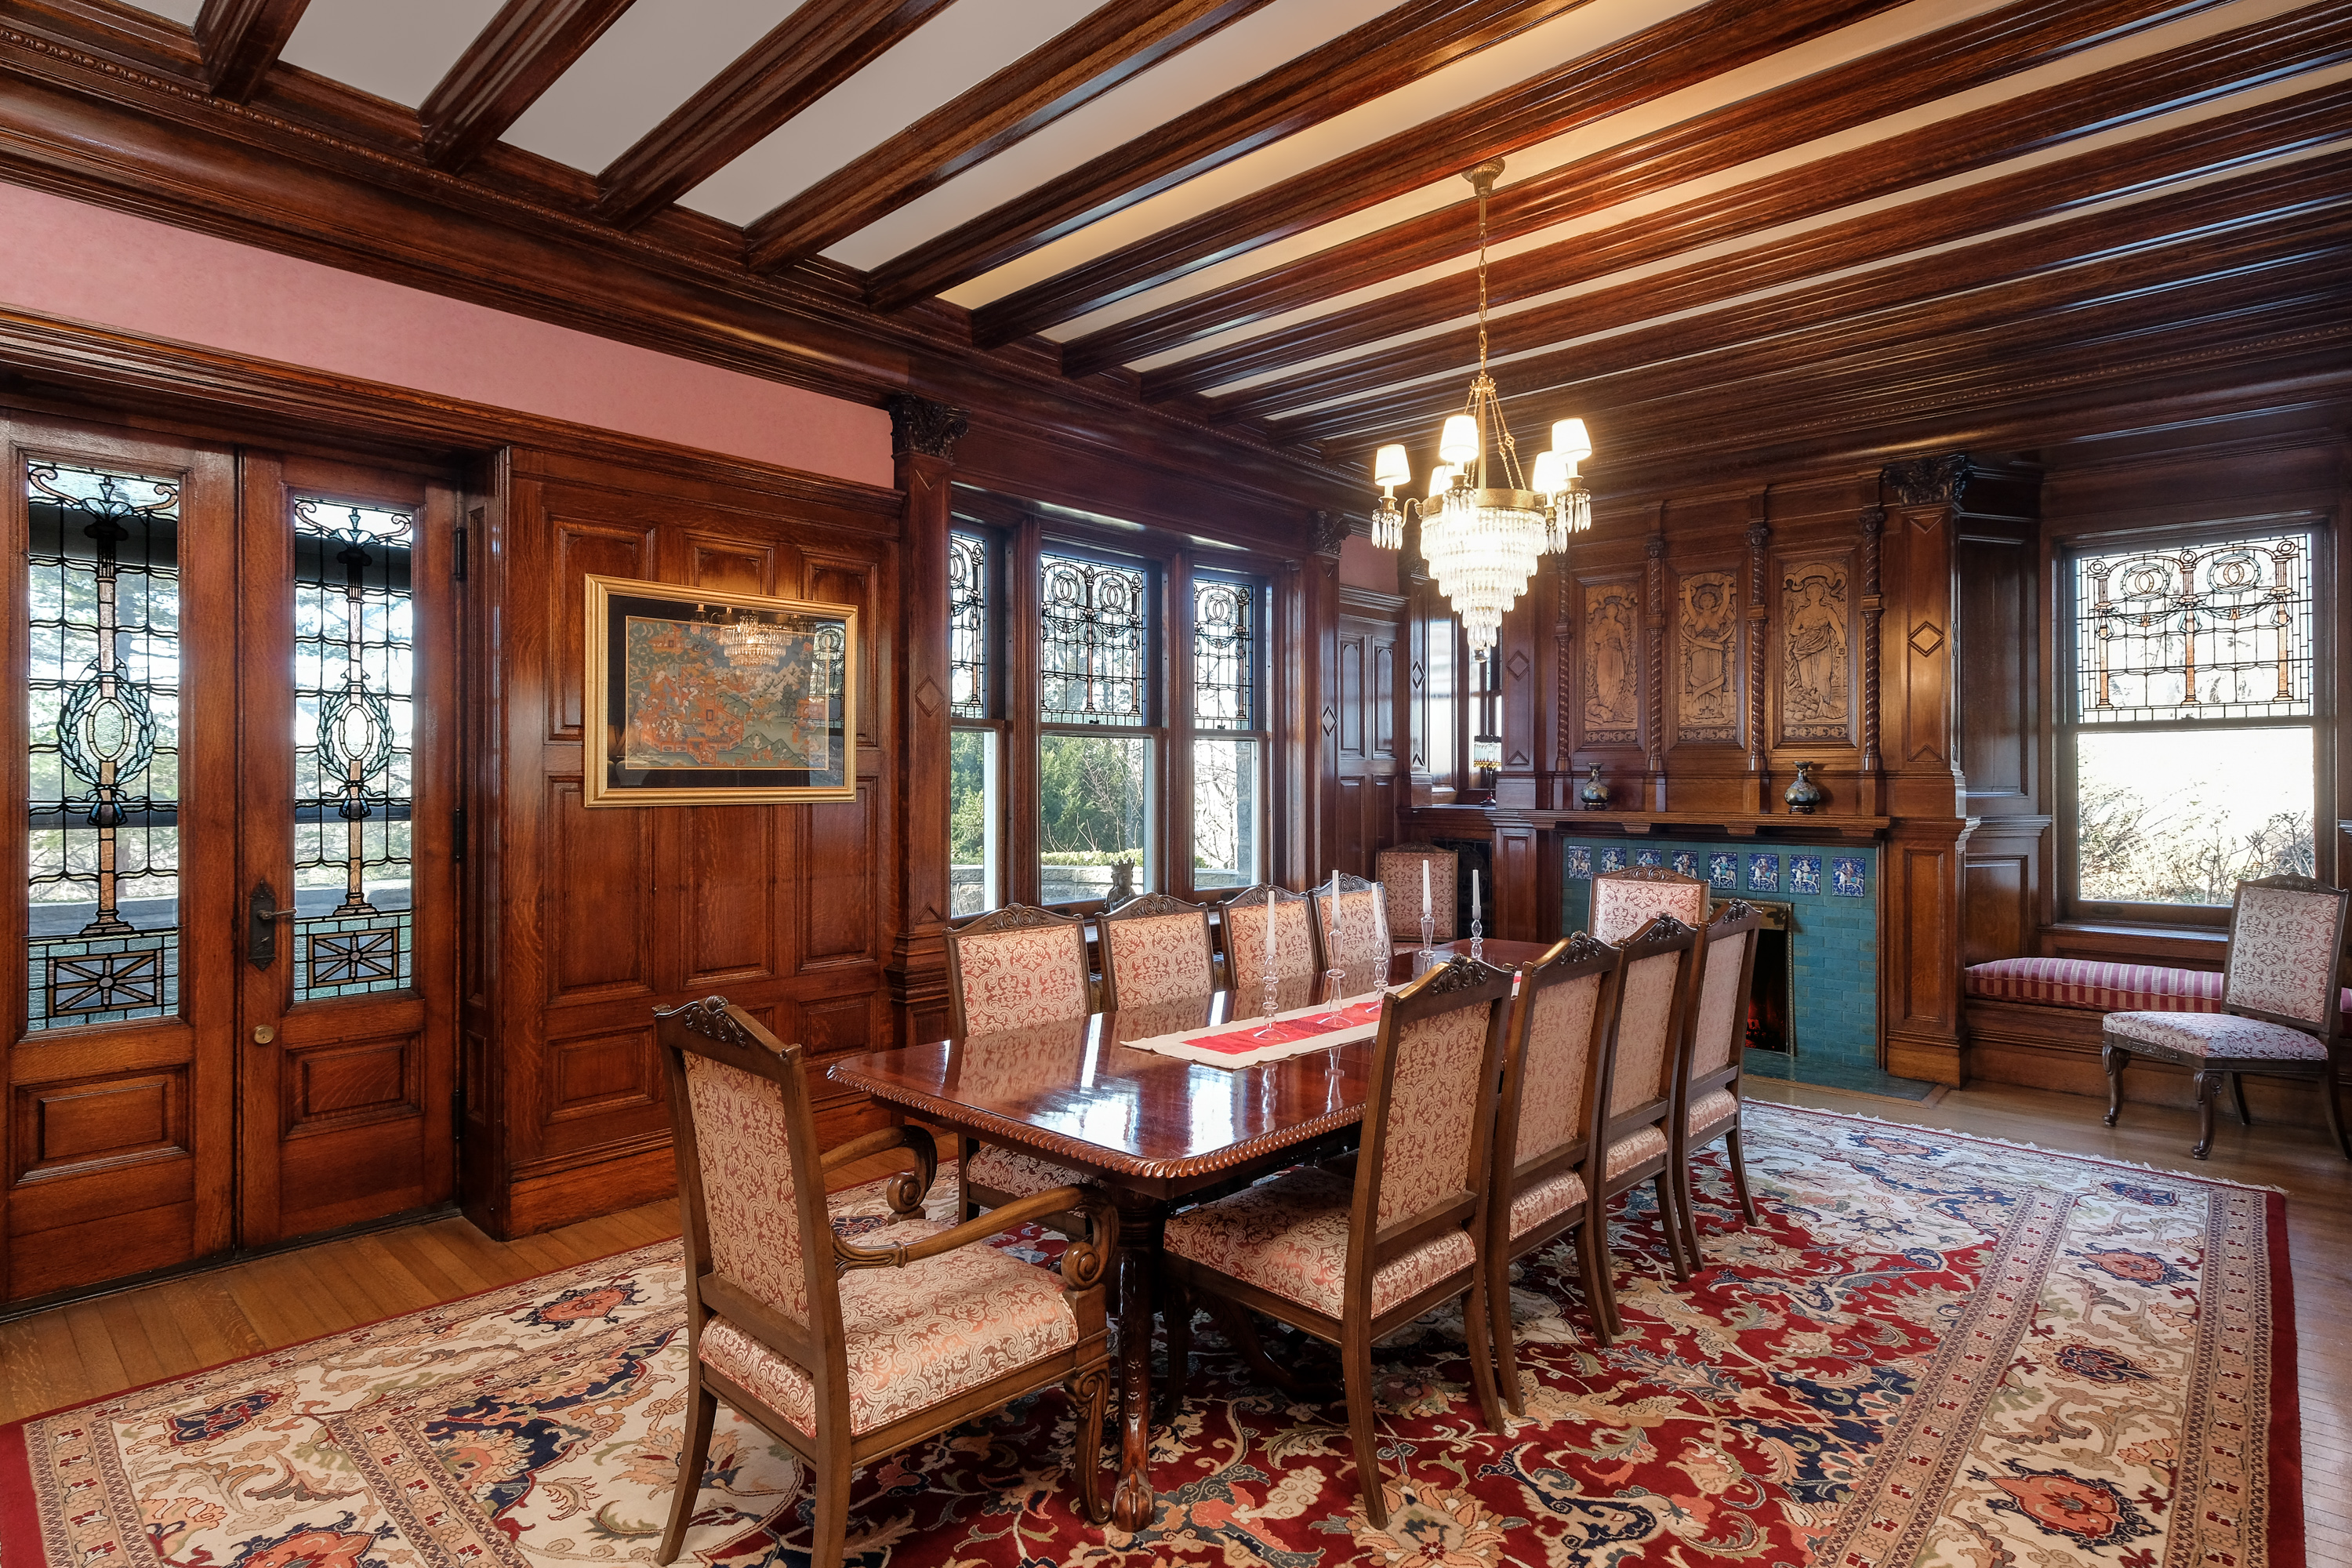 50 crows nest road, cool listings, westchester, bronxville, mansions, gothic revival